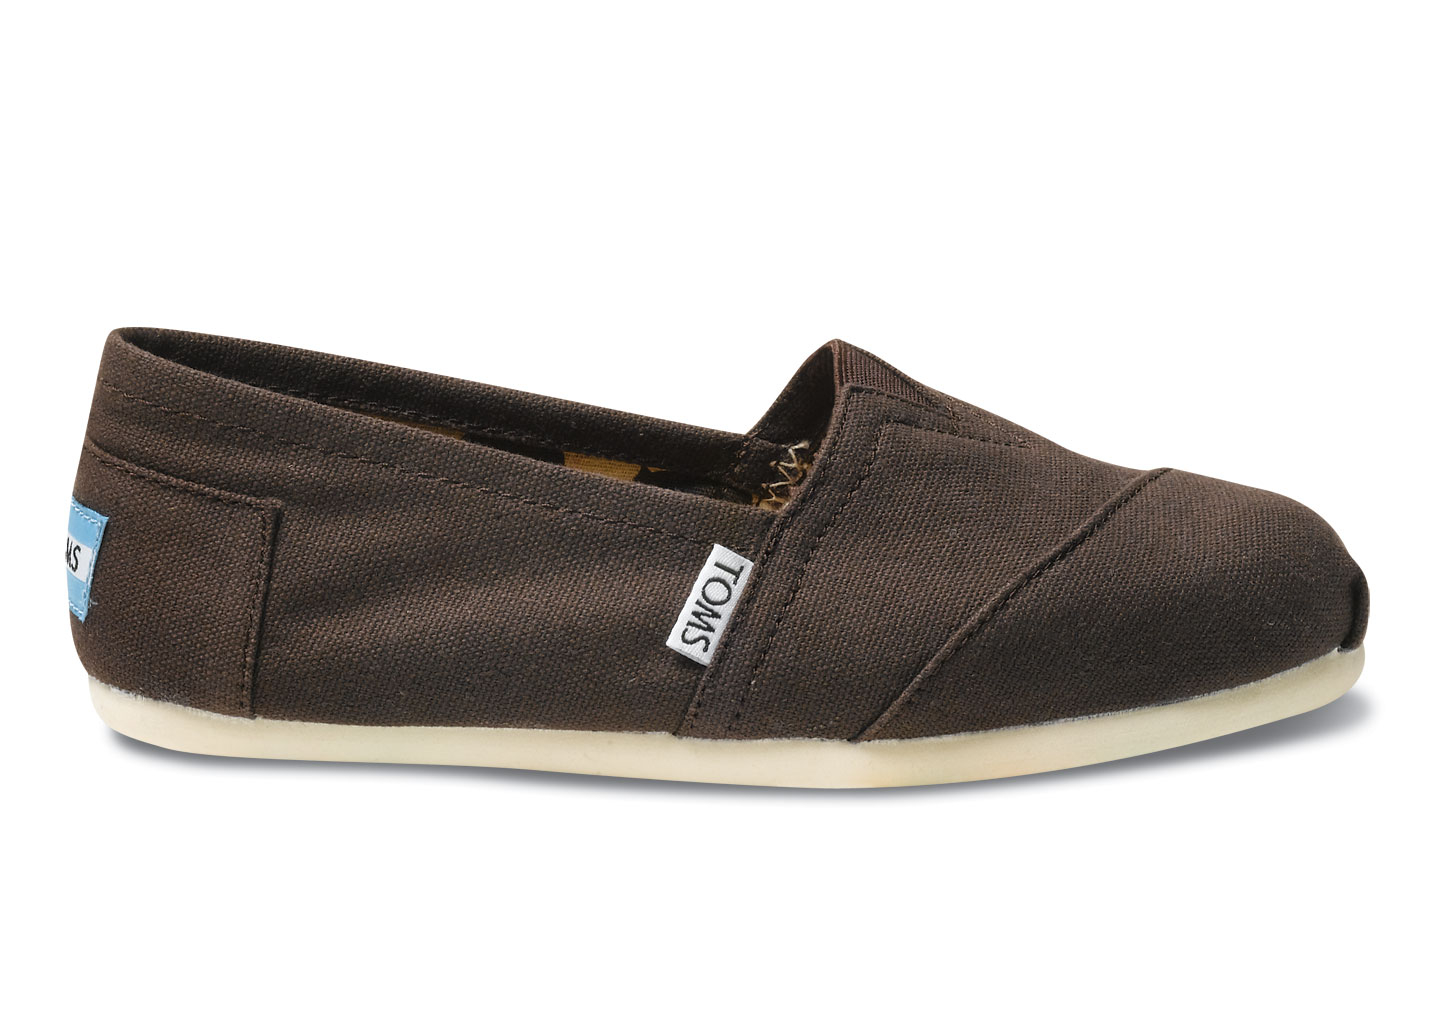 Lyst - Toms Chocolate ...